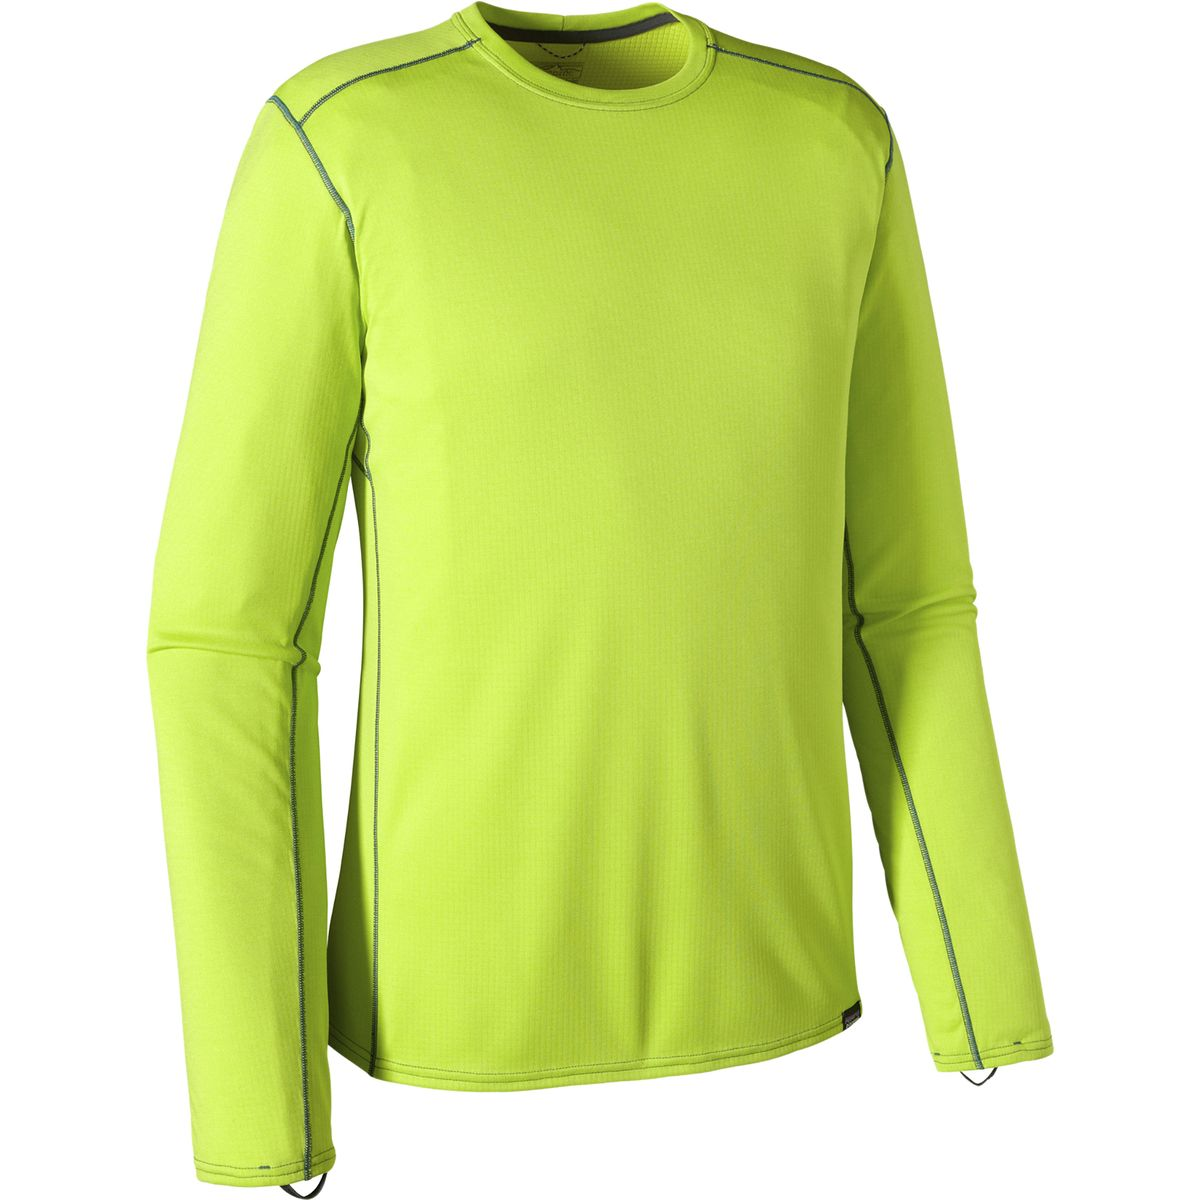 Patagonia capilene mens long sleeve top